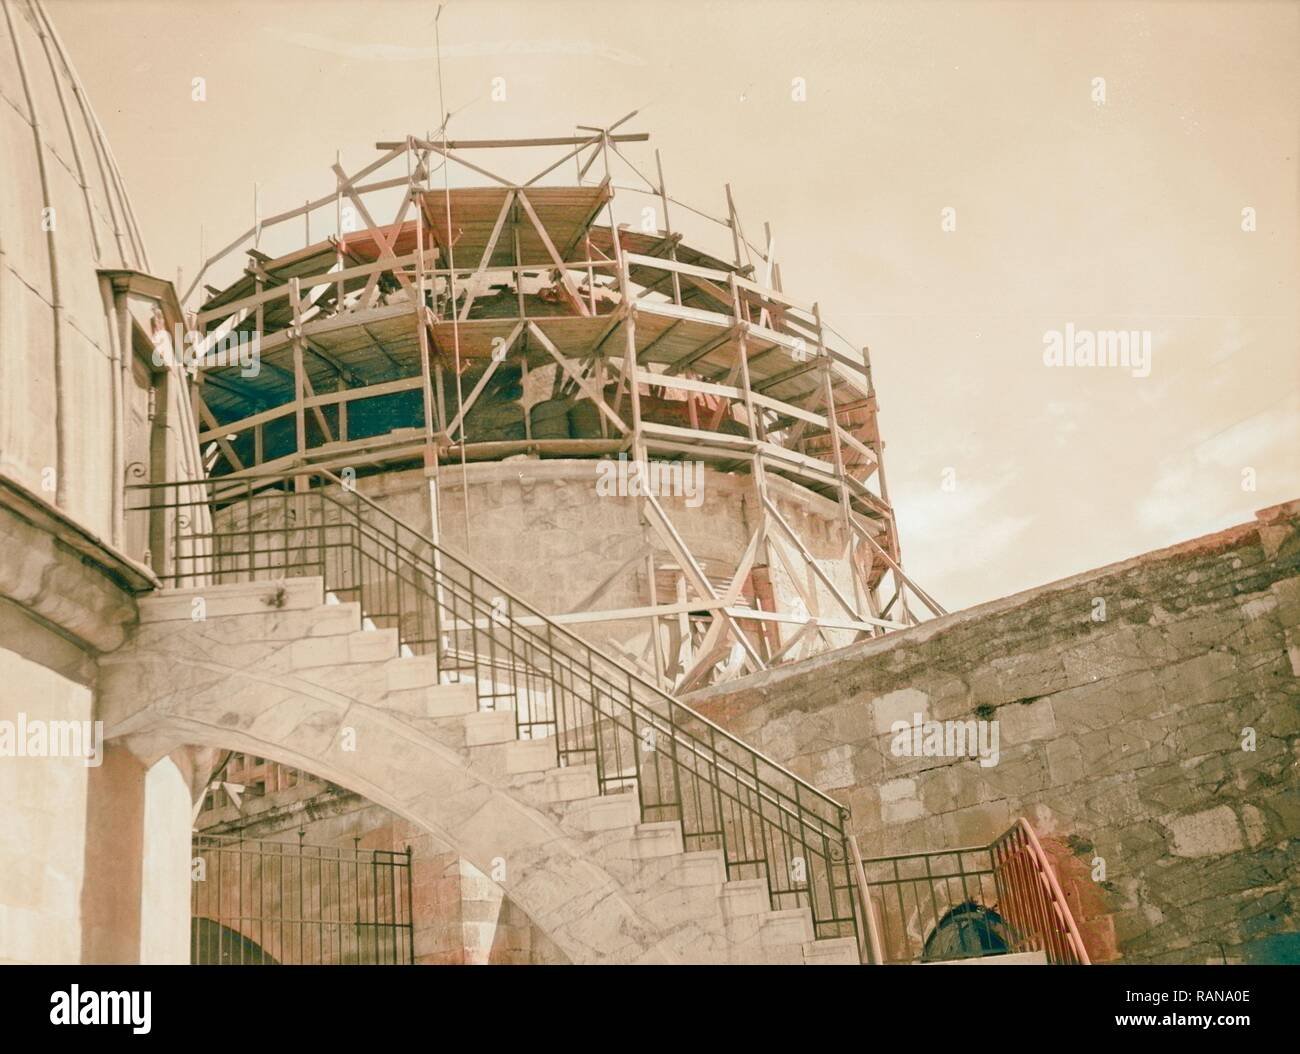 Dome over Greek Orthodox Cathedral braced for reinforcement 1934, Middle East. Reimagined by Gibon. Classic art with reimagined - Stock Image